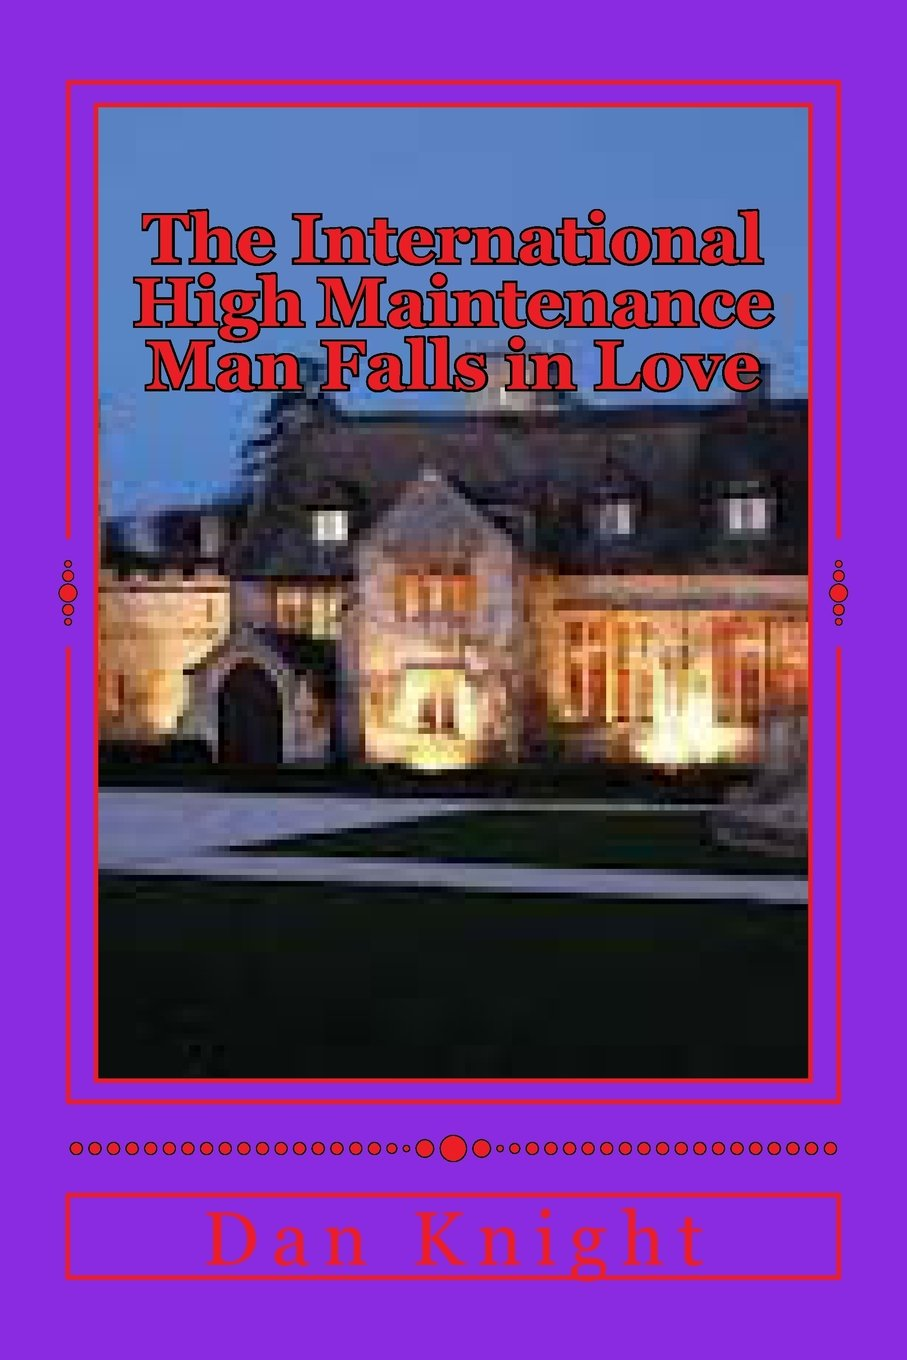 Download The International High Maintenance Man Falls in Love: He never saw it comming she blindsided him (Love can take you places you never imagined) (Volume 1) pdf